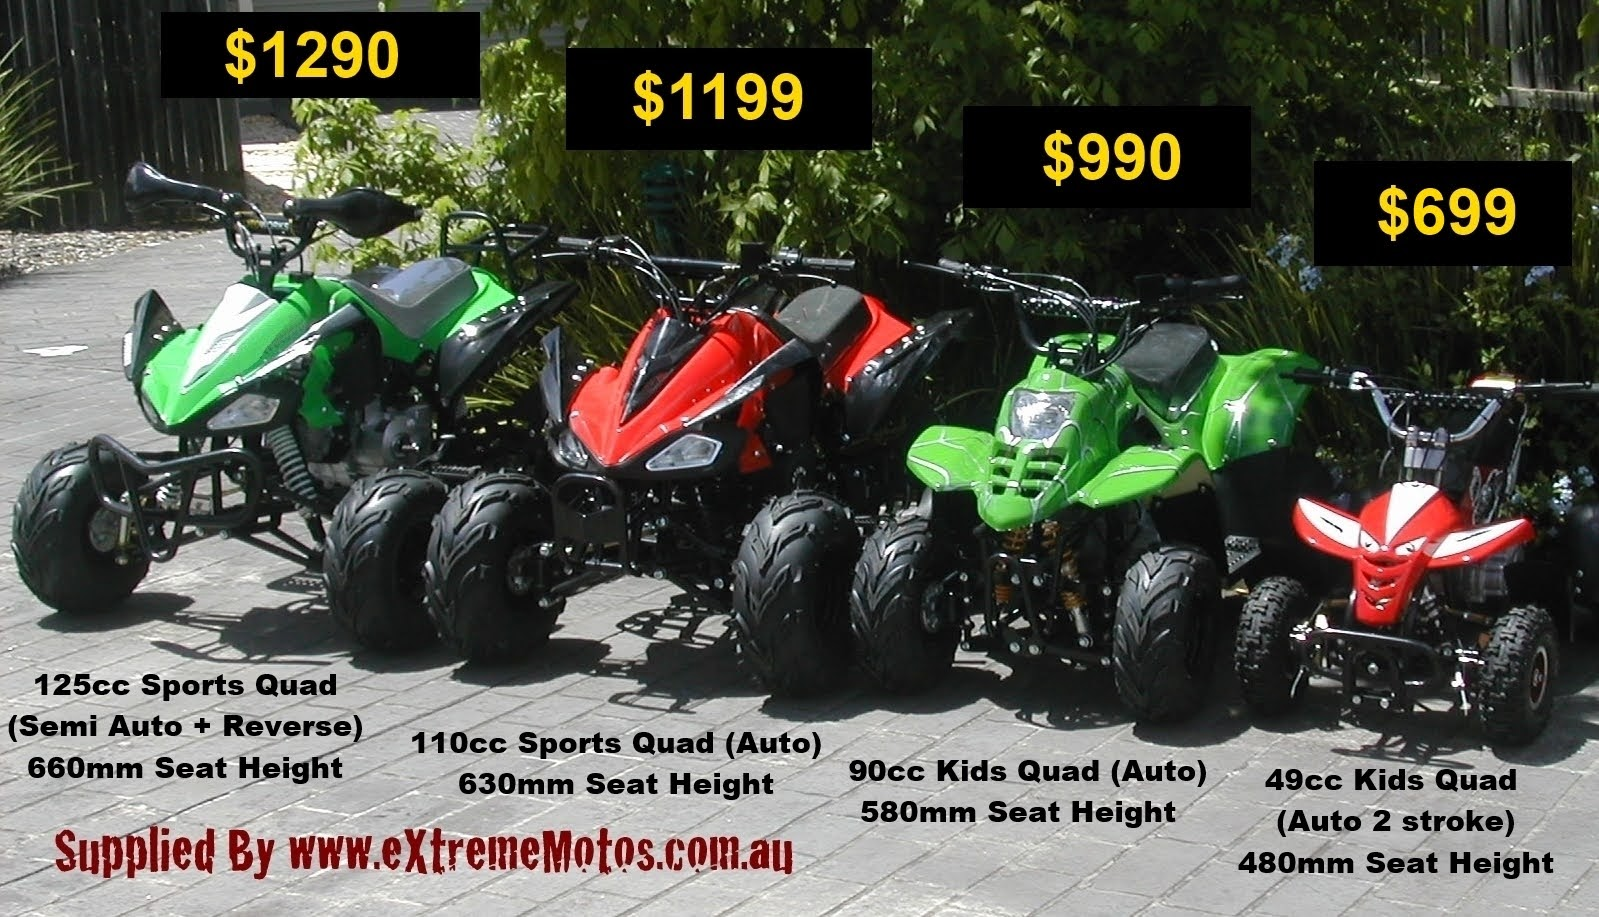 Size Cost Comparison Kids 125cc 110cc 90cc 49cc Sports Quad Bikes Atv